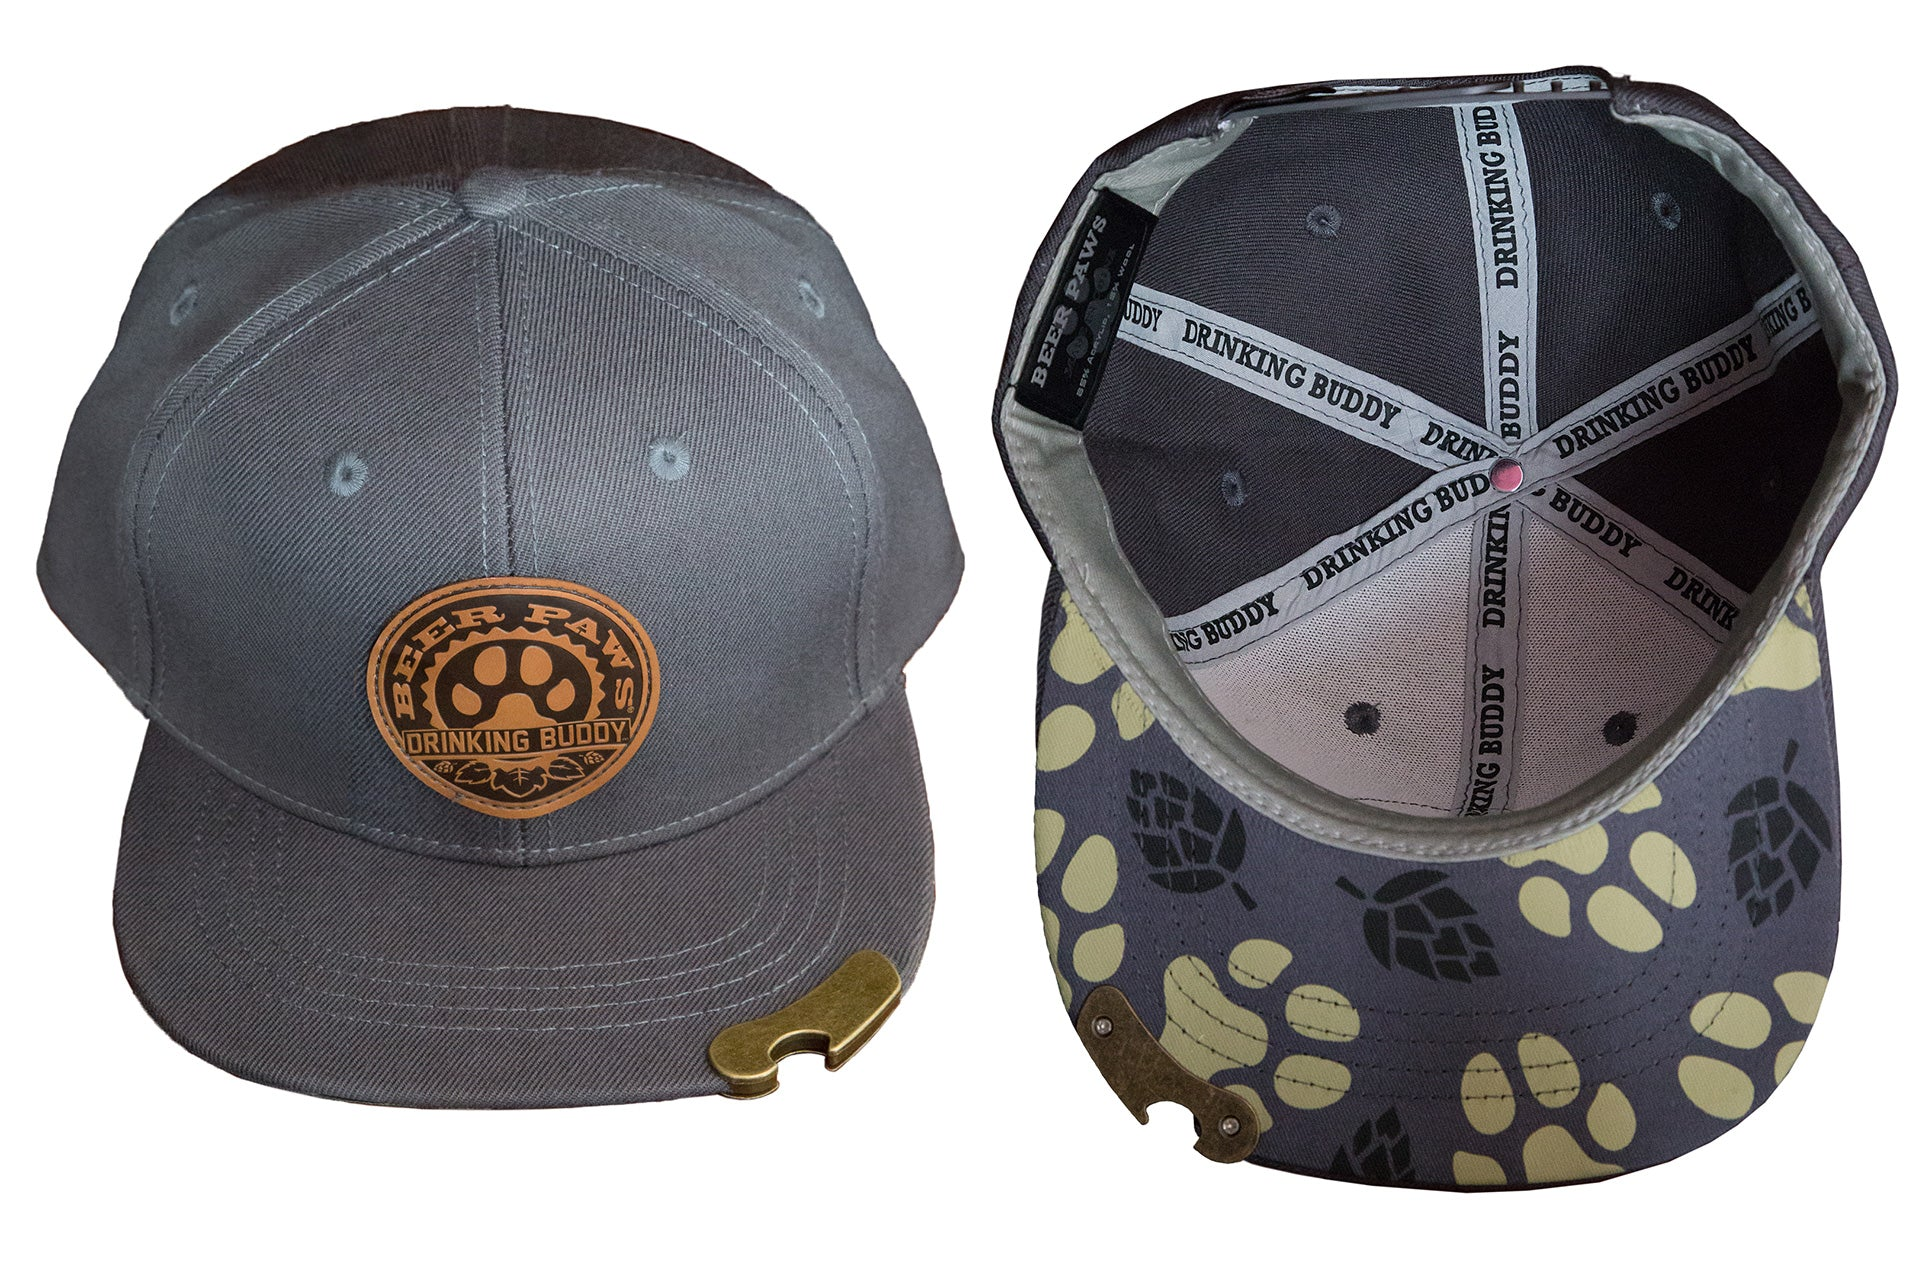 bae776c1c07 Flat bill snapback hat with bottle opener and leather patch jpg 1920x1286  Camo hat with bottle